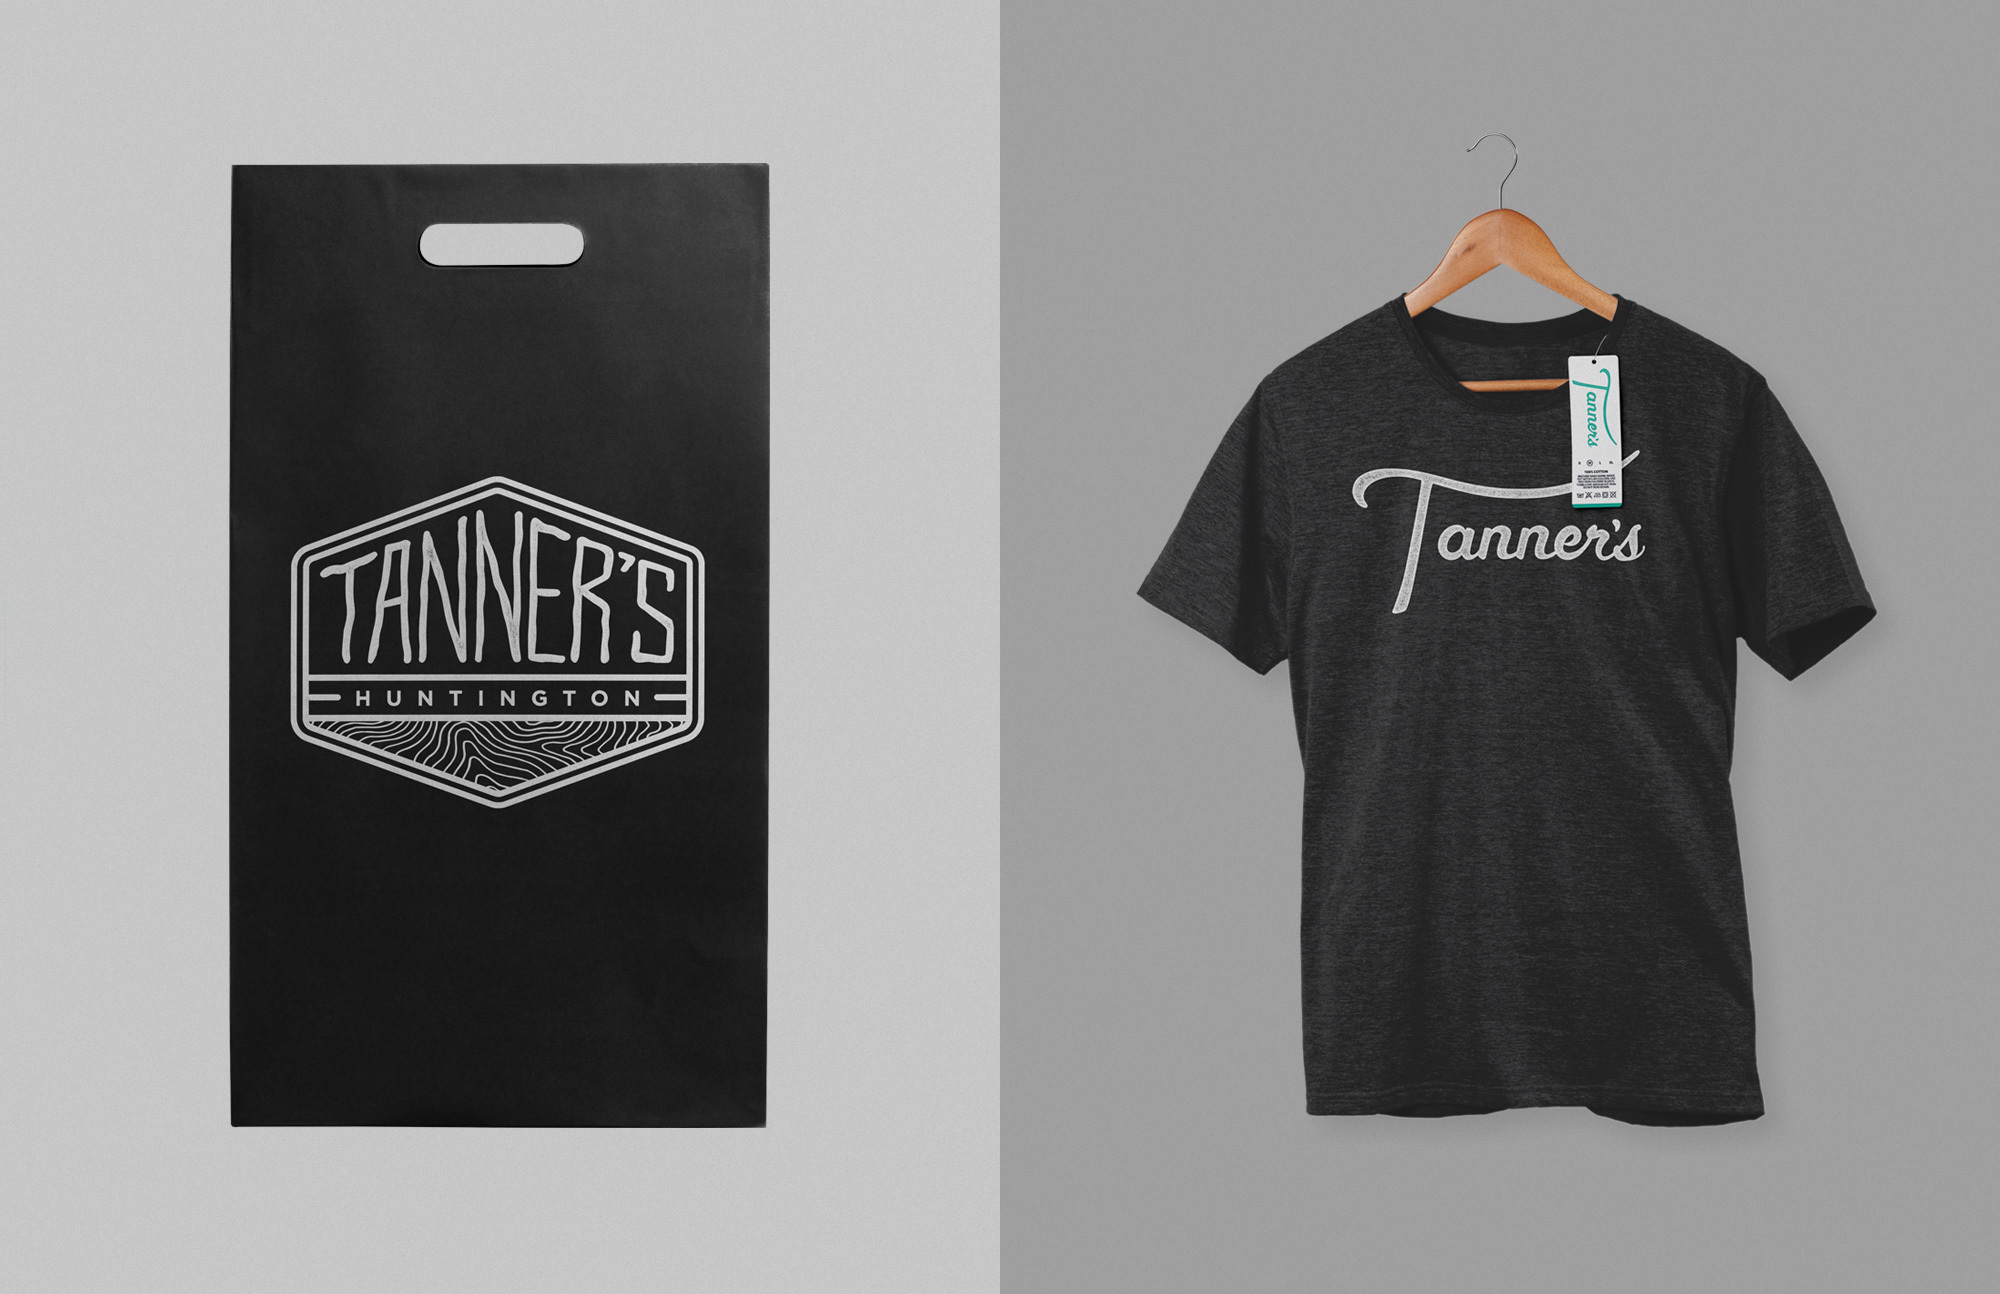 004_Samples_Tanners_2